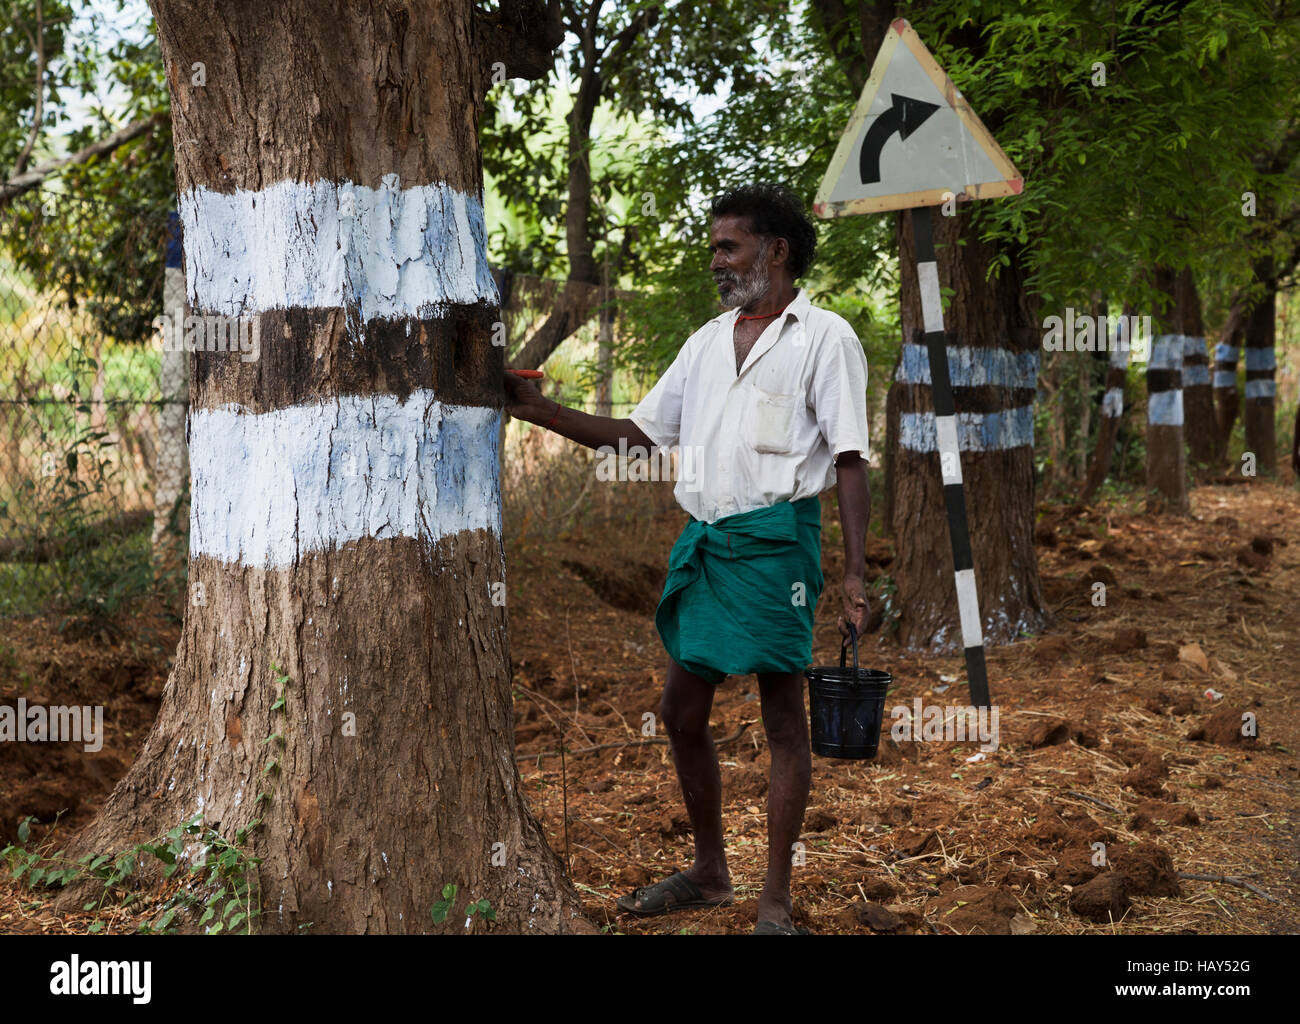 Indian worker painting safety marker rings on roadside trees, Tamil